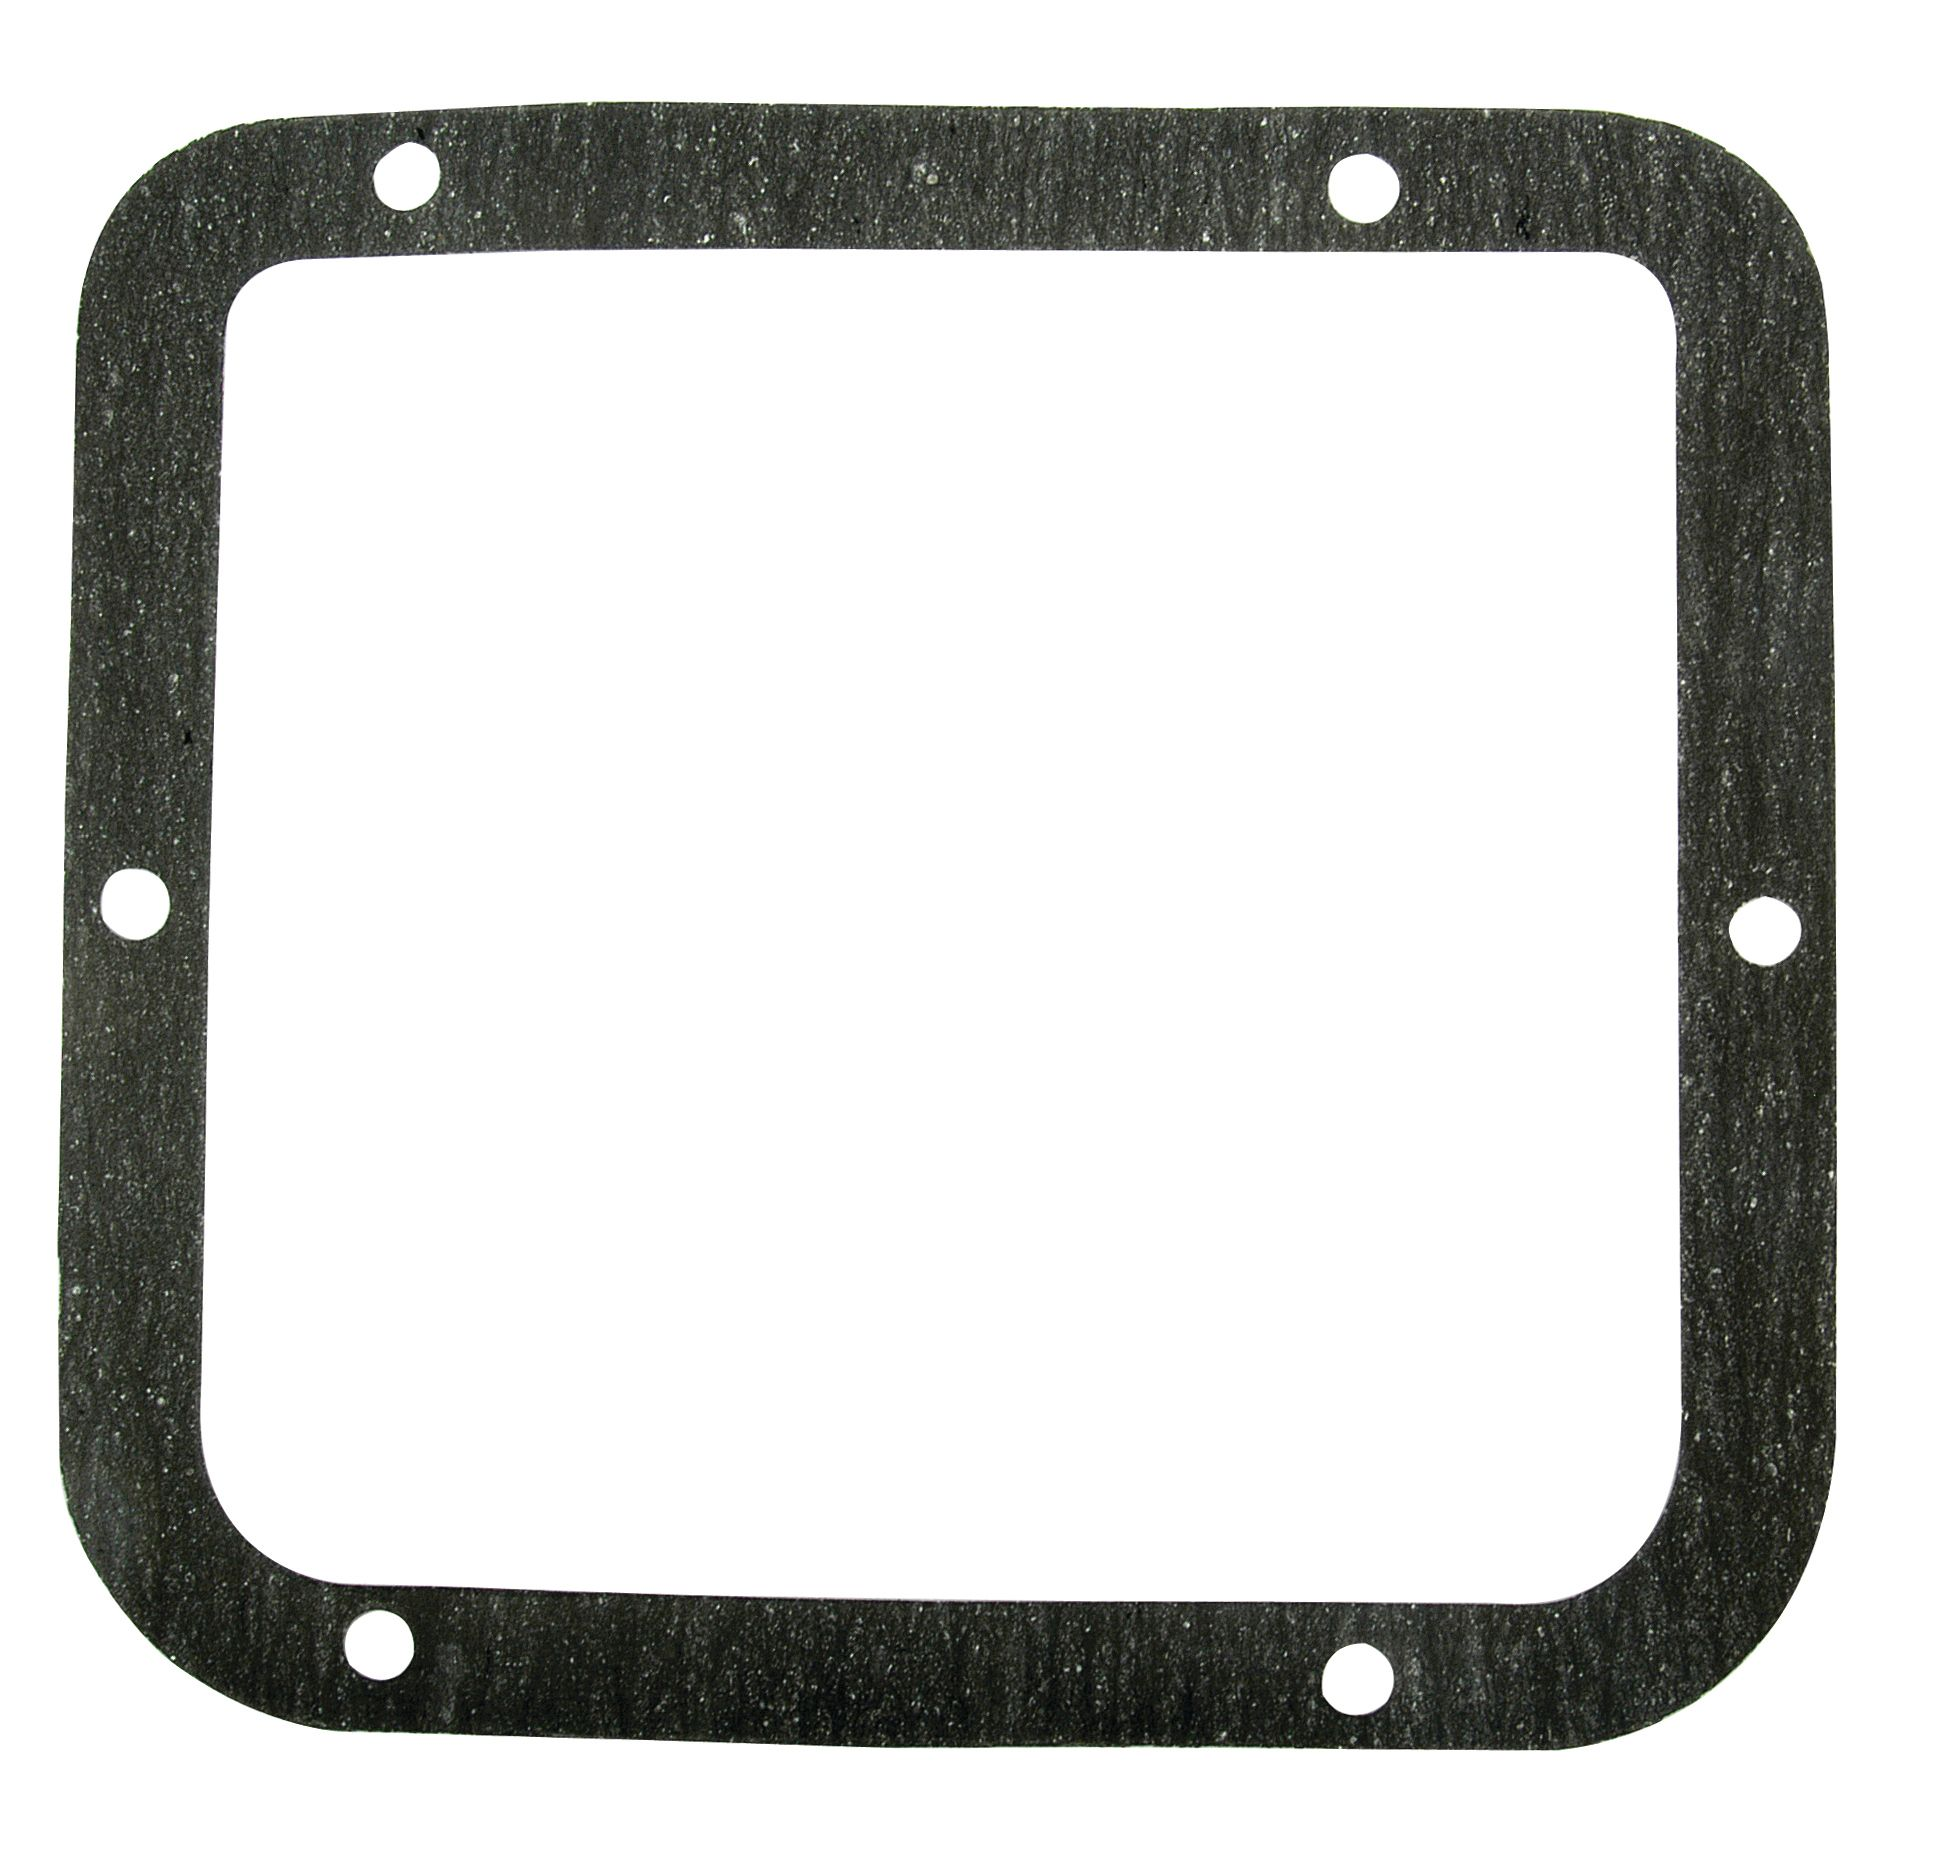 UNIVERSAL TRACTORS GASKET-GEARSHIFT COVER 62546